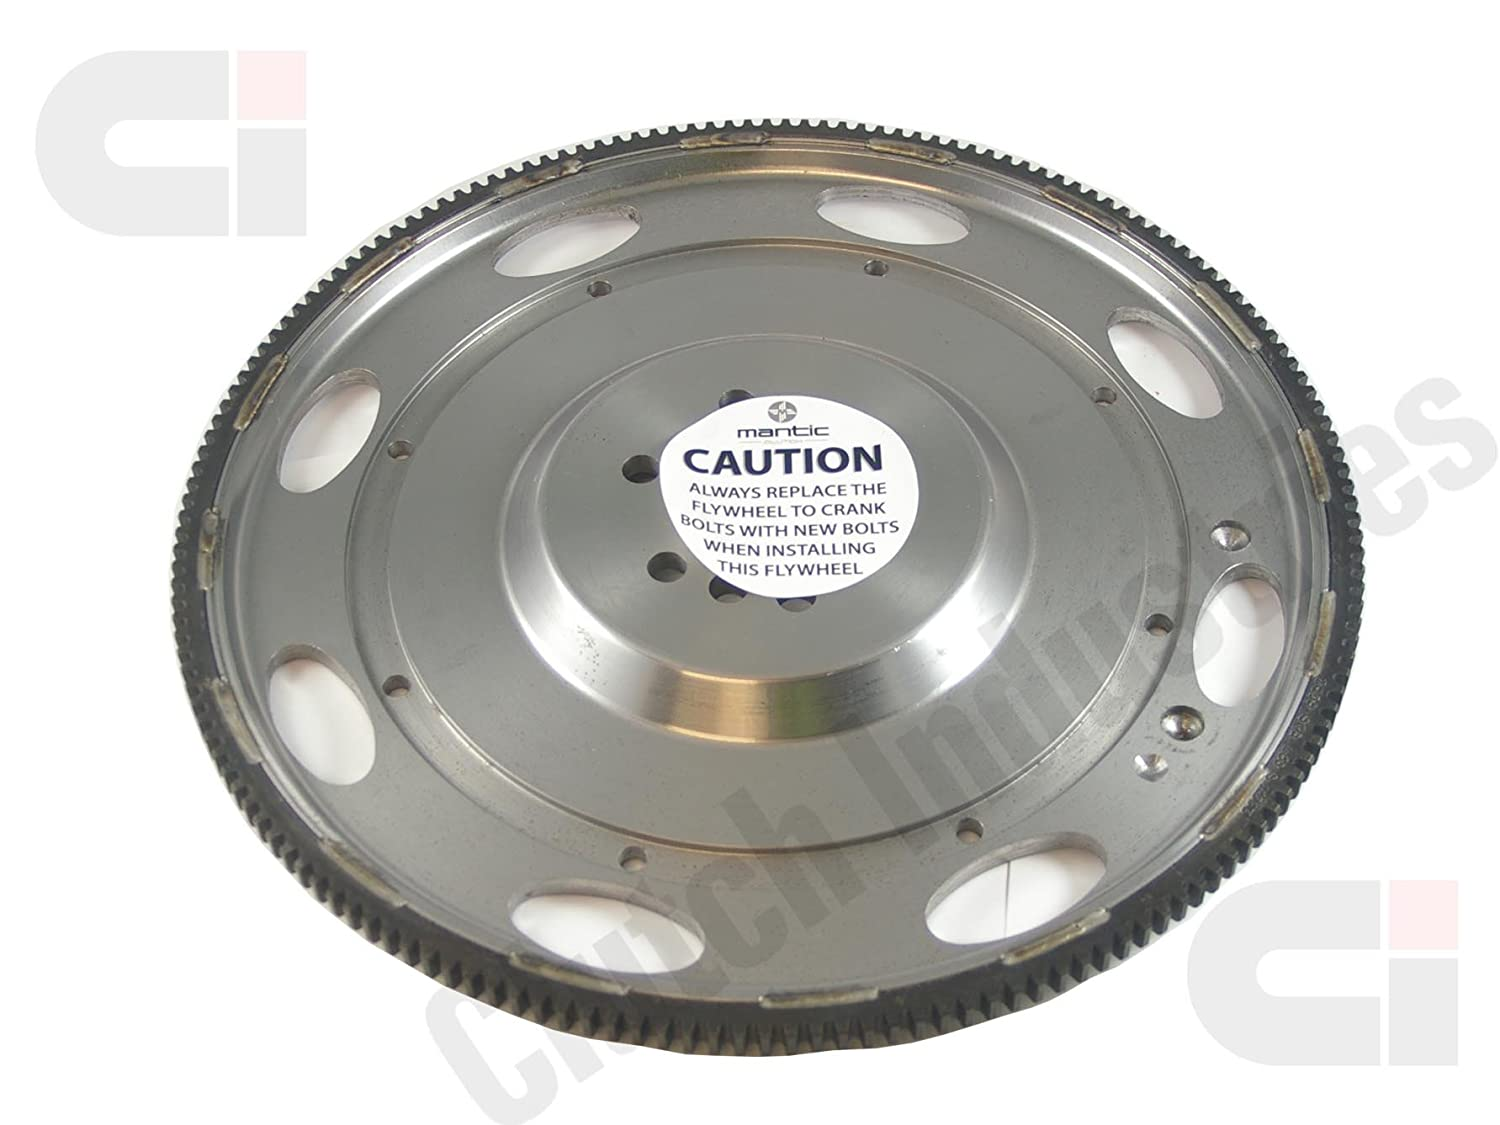 Mantic Track Clutch Kit | Aluminium Cover Assembly | Twin Ceramic Clutch Plates, No Cushion - More Suited to Track Use | CSC | Solid Flywheel with Bolt Kit ...